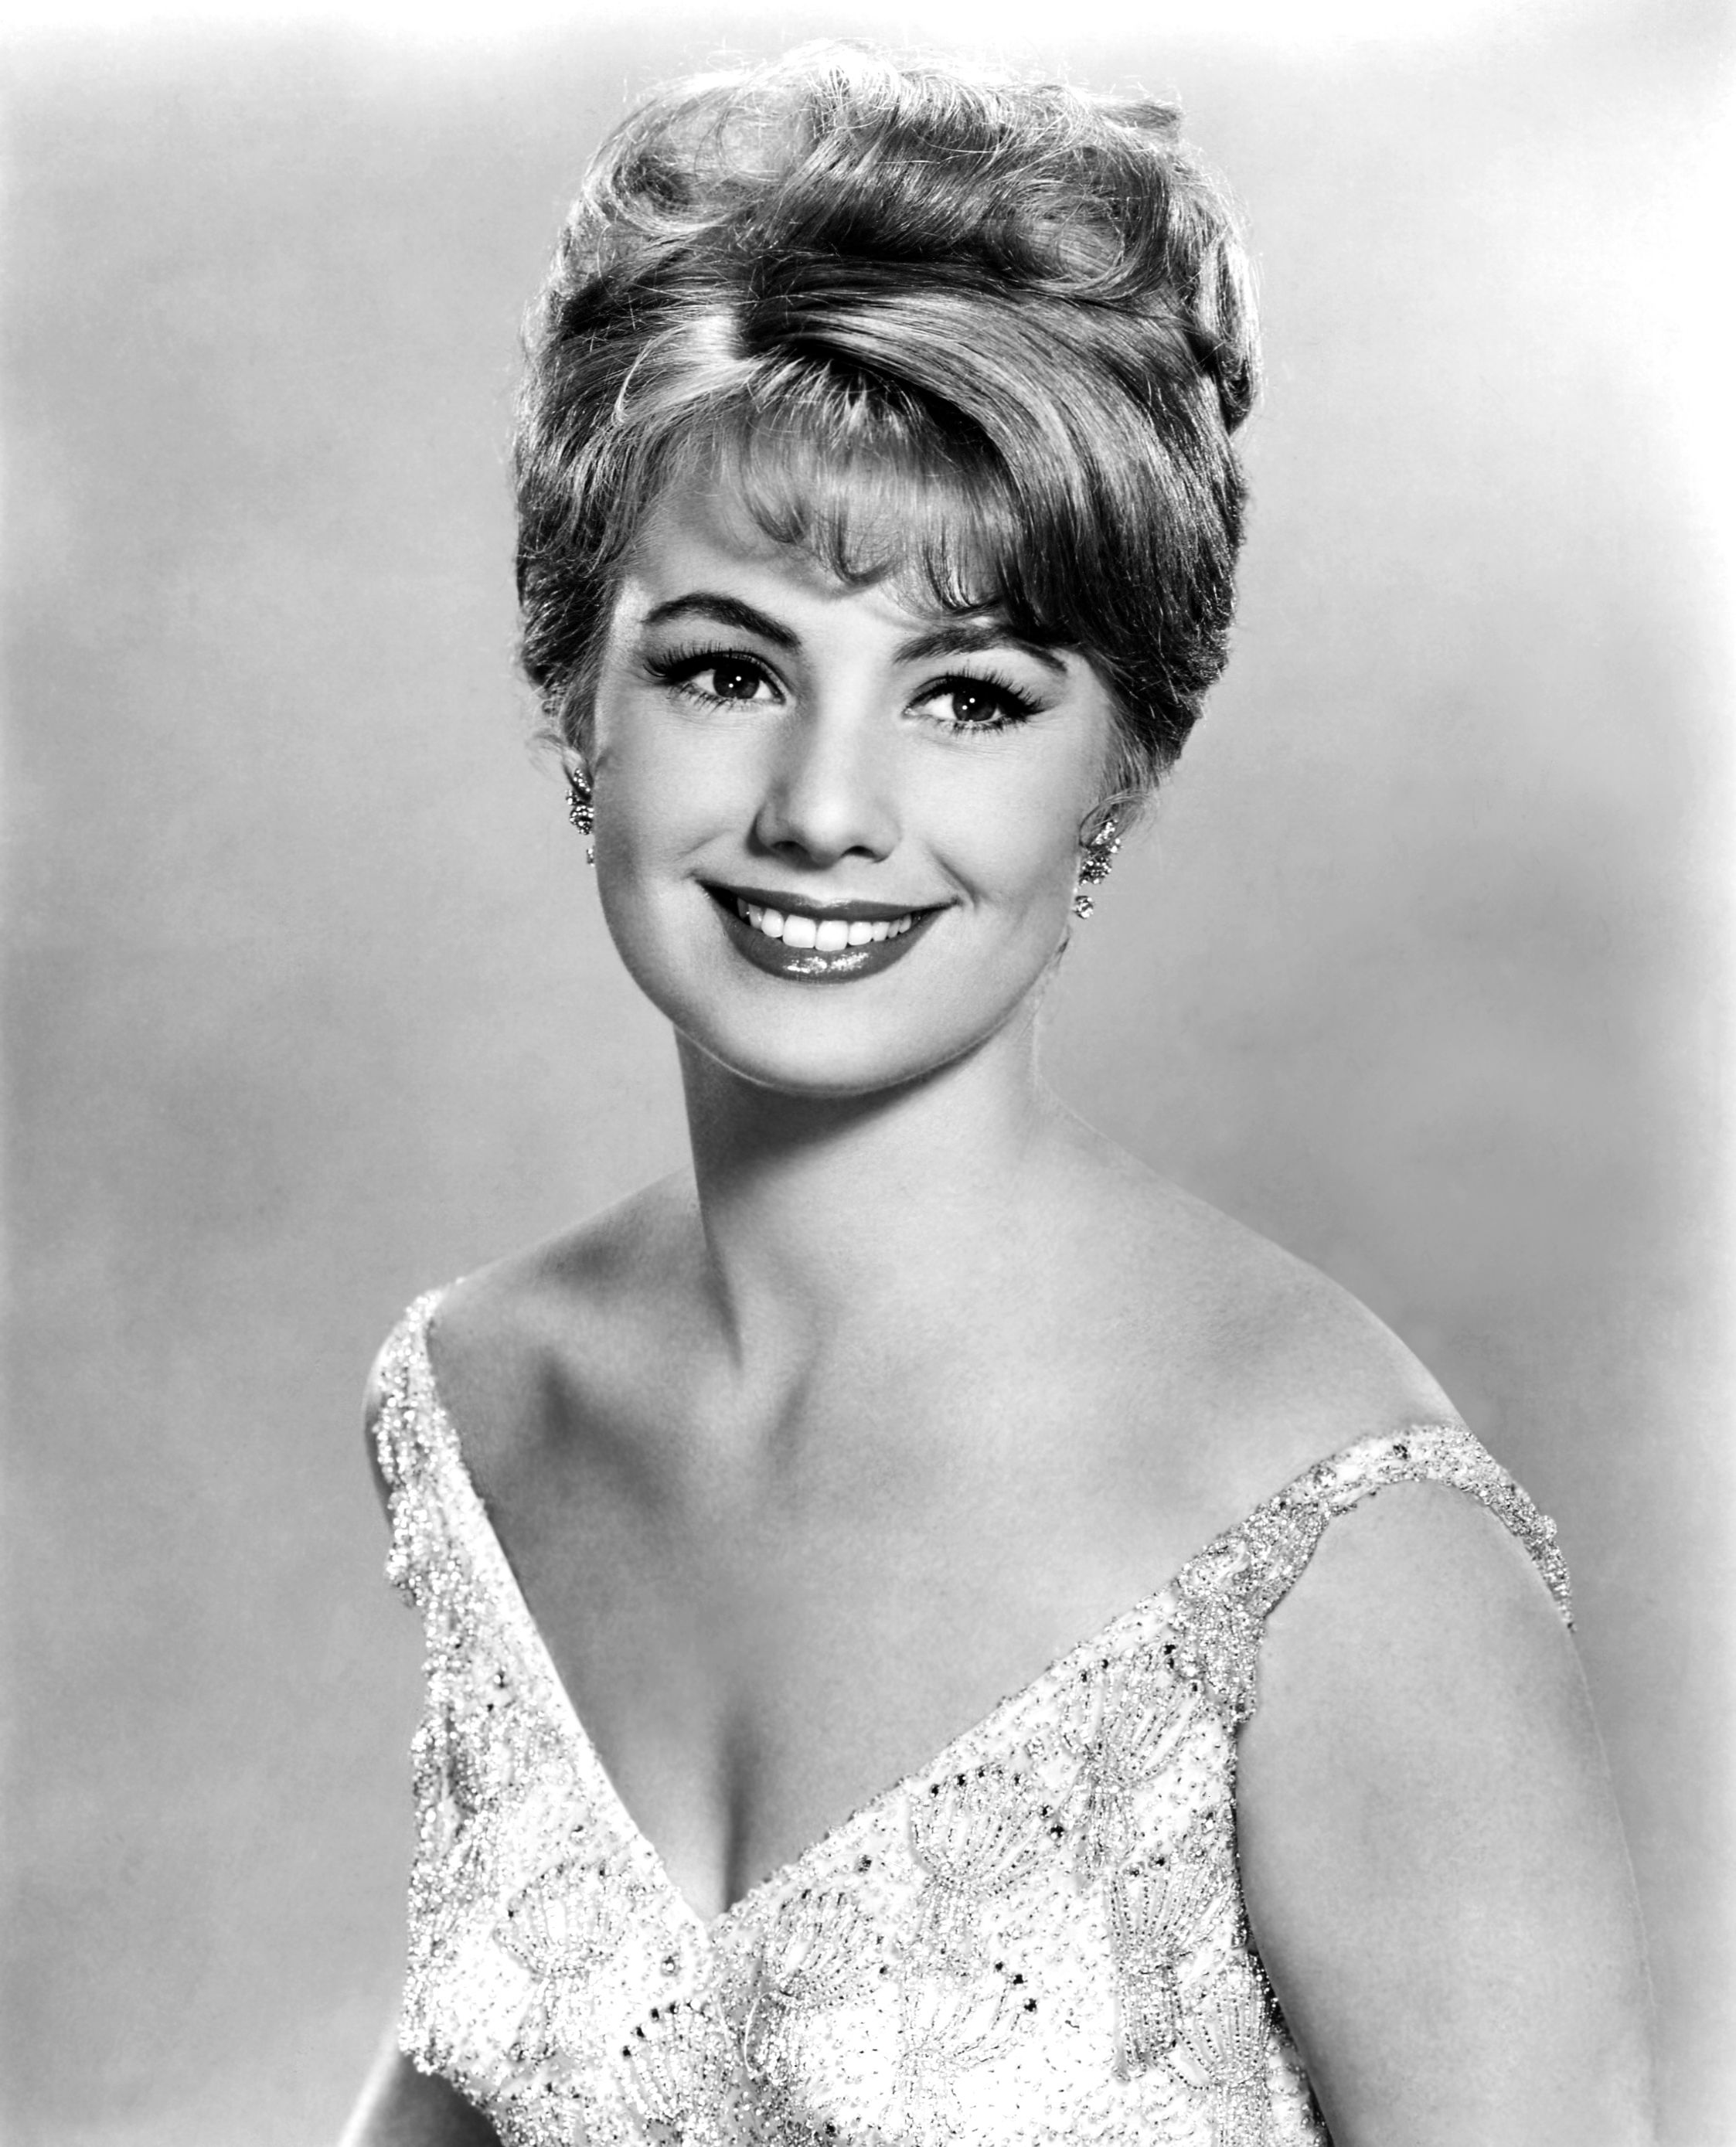 Shirley Jones born March 31, 1934 (age 84) Shirley Jones born March 31, 1934 (age 84) new photo